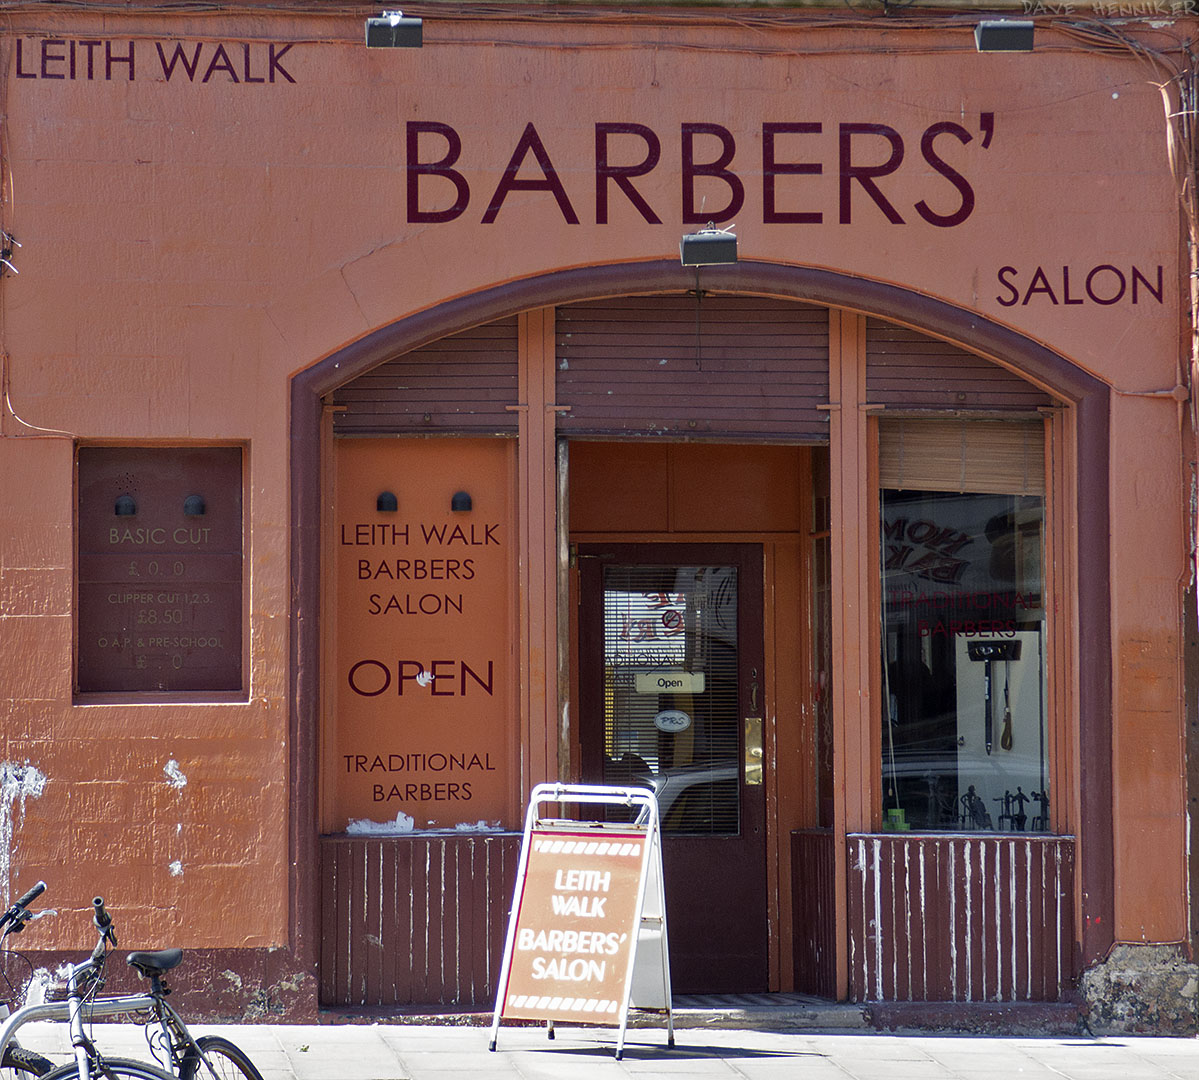 Assuming that the salon belongs to more than one barber then the apostrophe isn't misplaced.